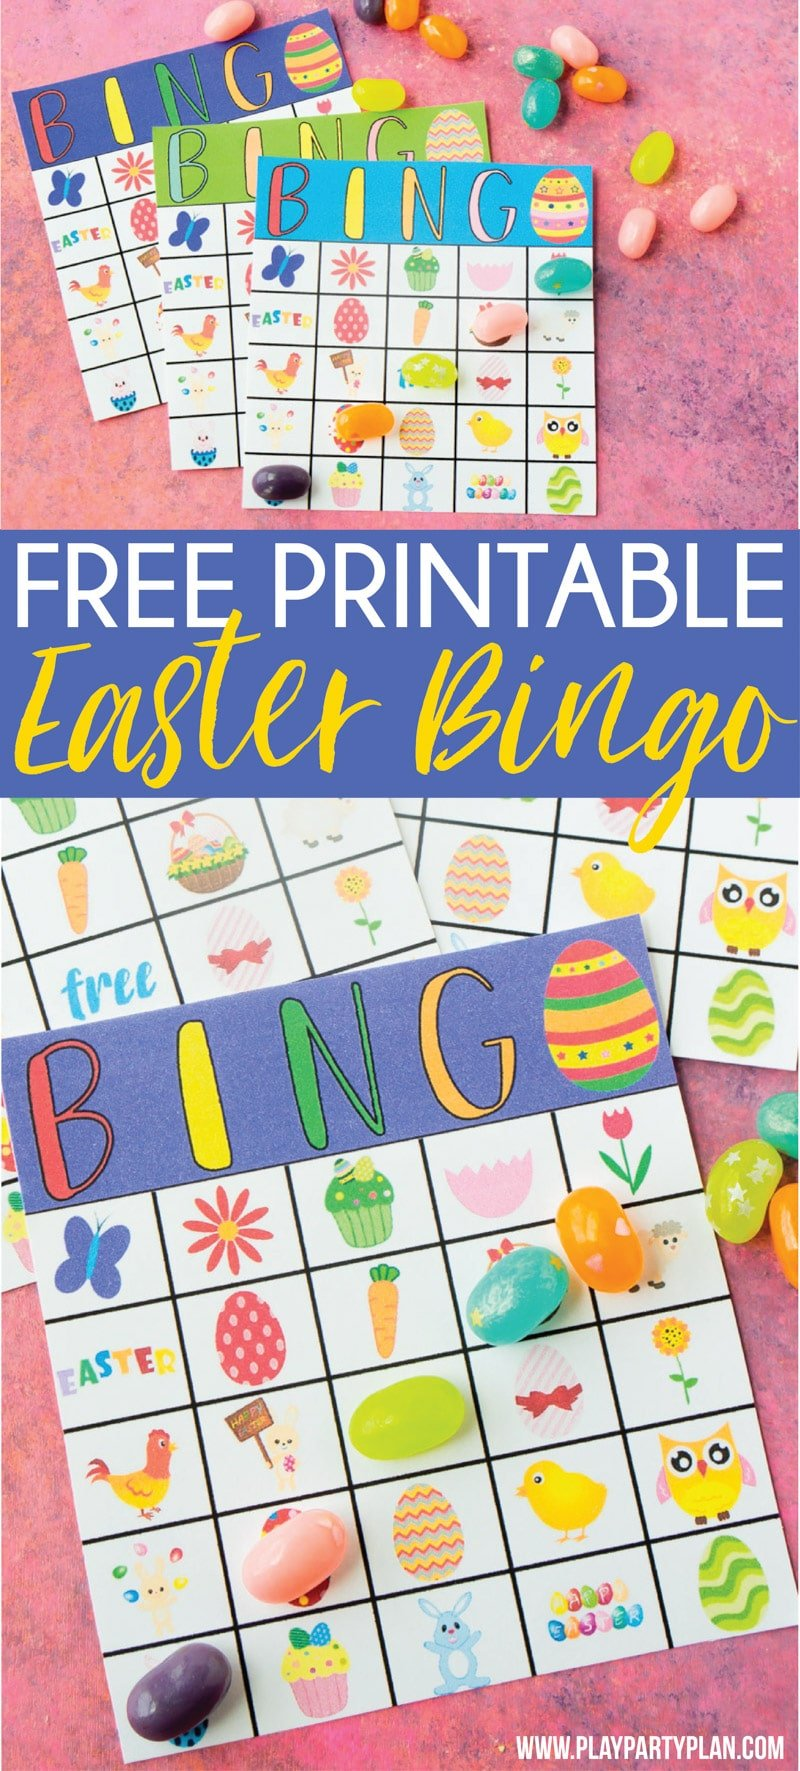 Free printable Easter bingo game that works great for preschool all the way up to cards for adults! Includes 40 unique cards and tons of fun prizes for kids or adults! via @playpartyplan